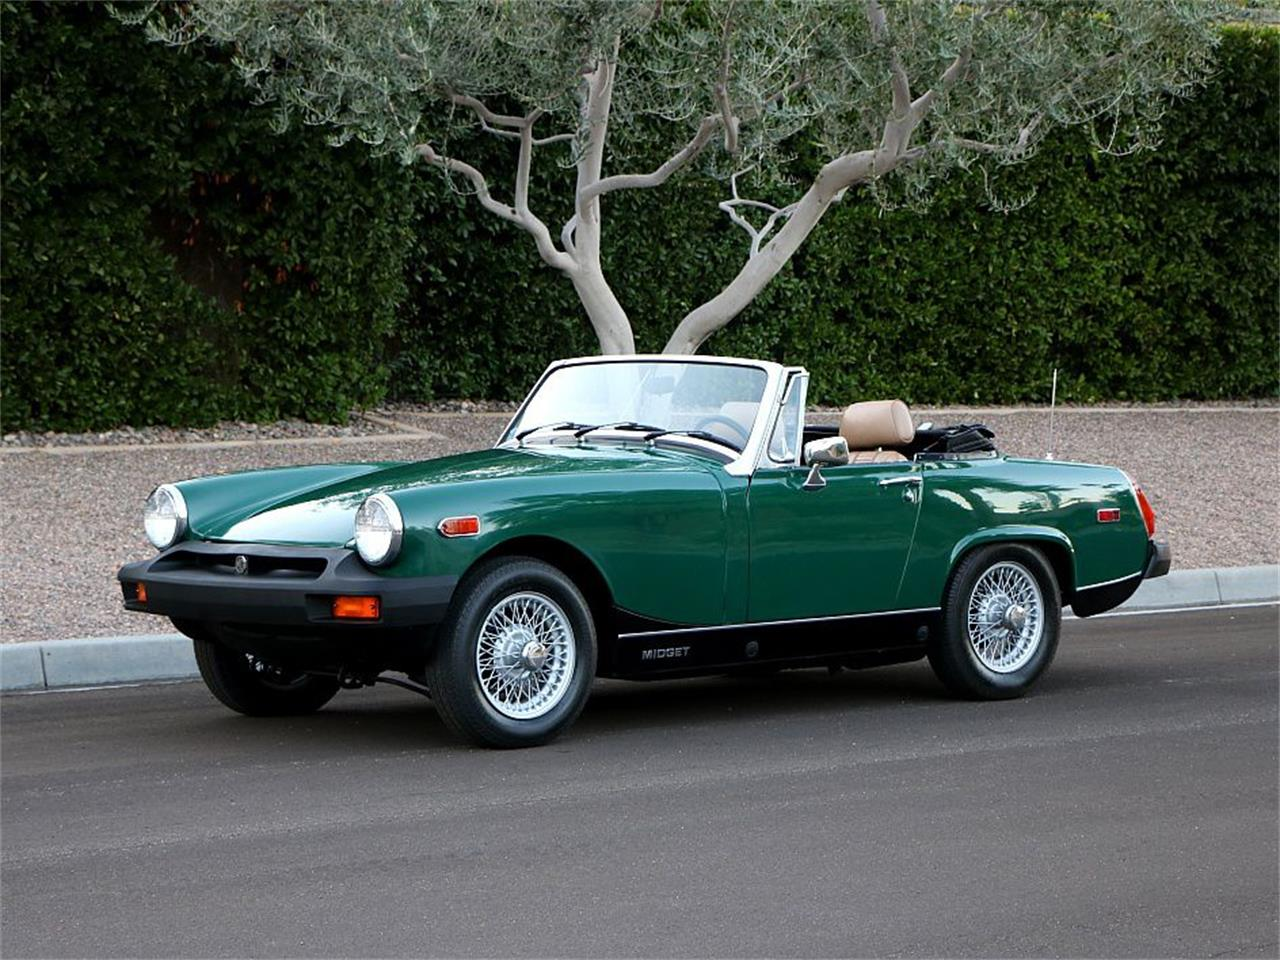 Mg midget roster — pic 15